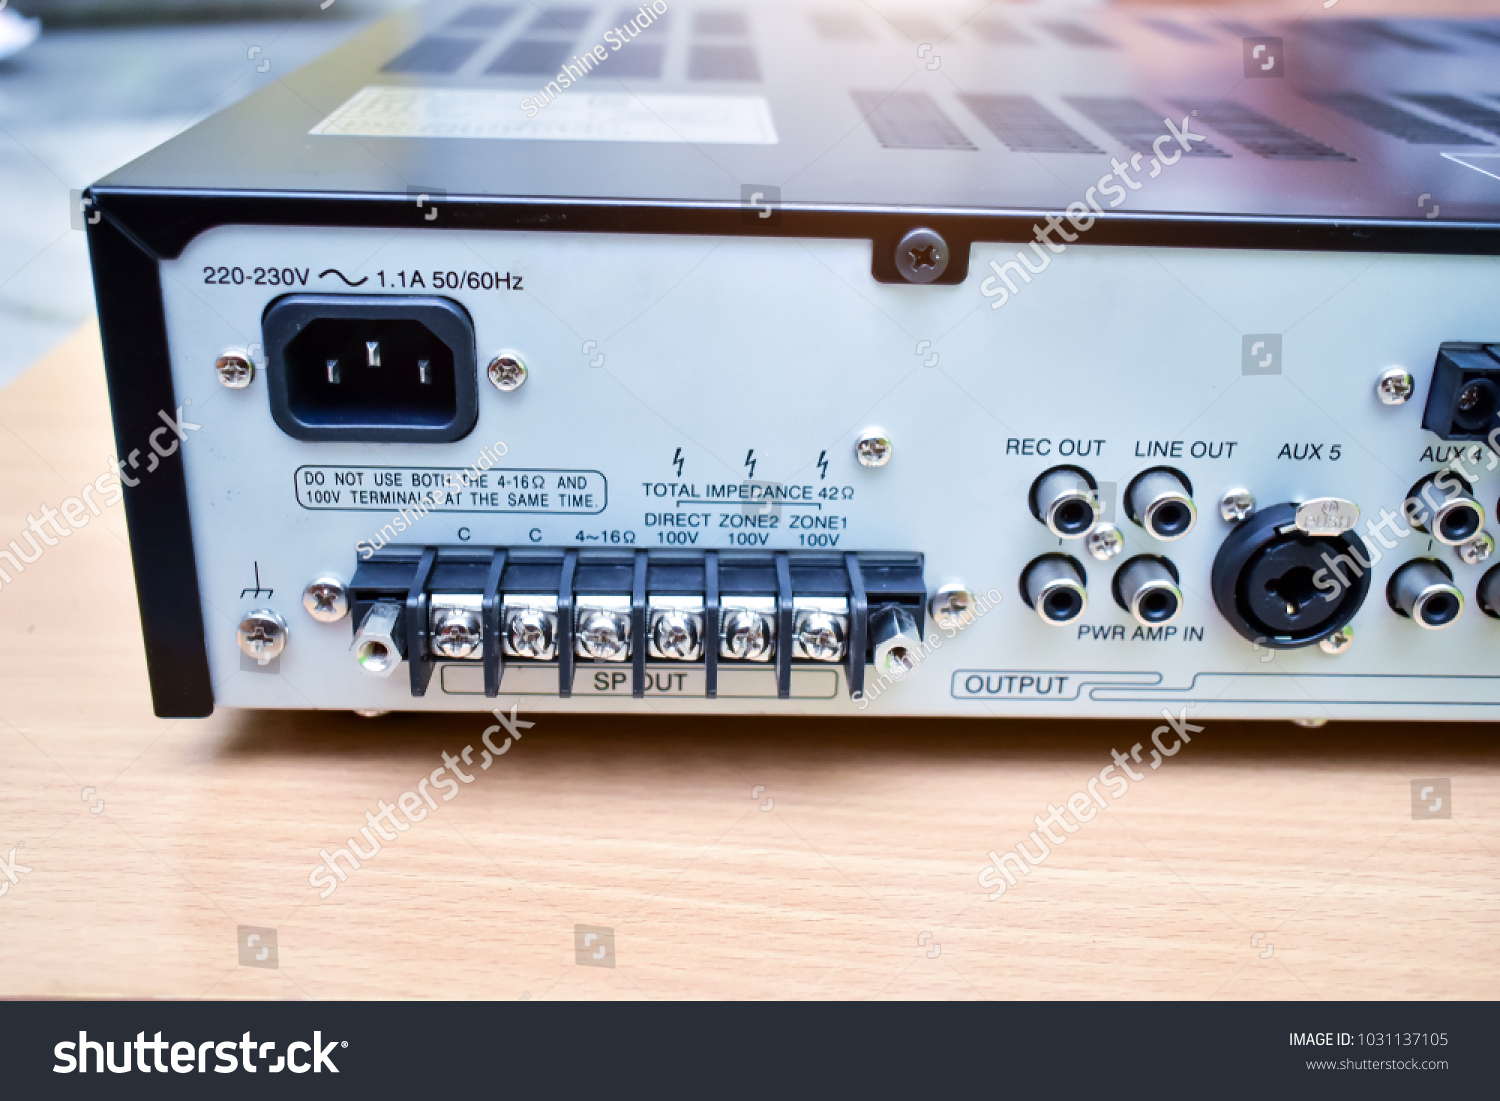 Audio Circuit Connection System Amplifier After Stock Photo Edit Wireless Microphone Audiocircuit Of Cleaning At Officeconcept Repairing Technology Equipment